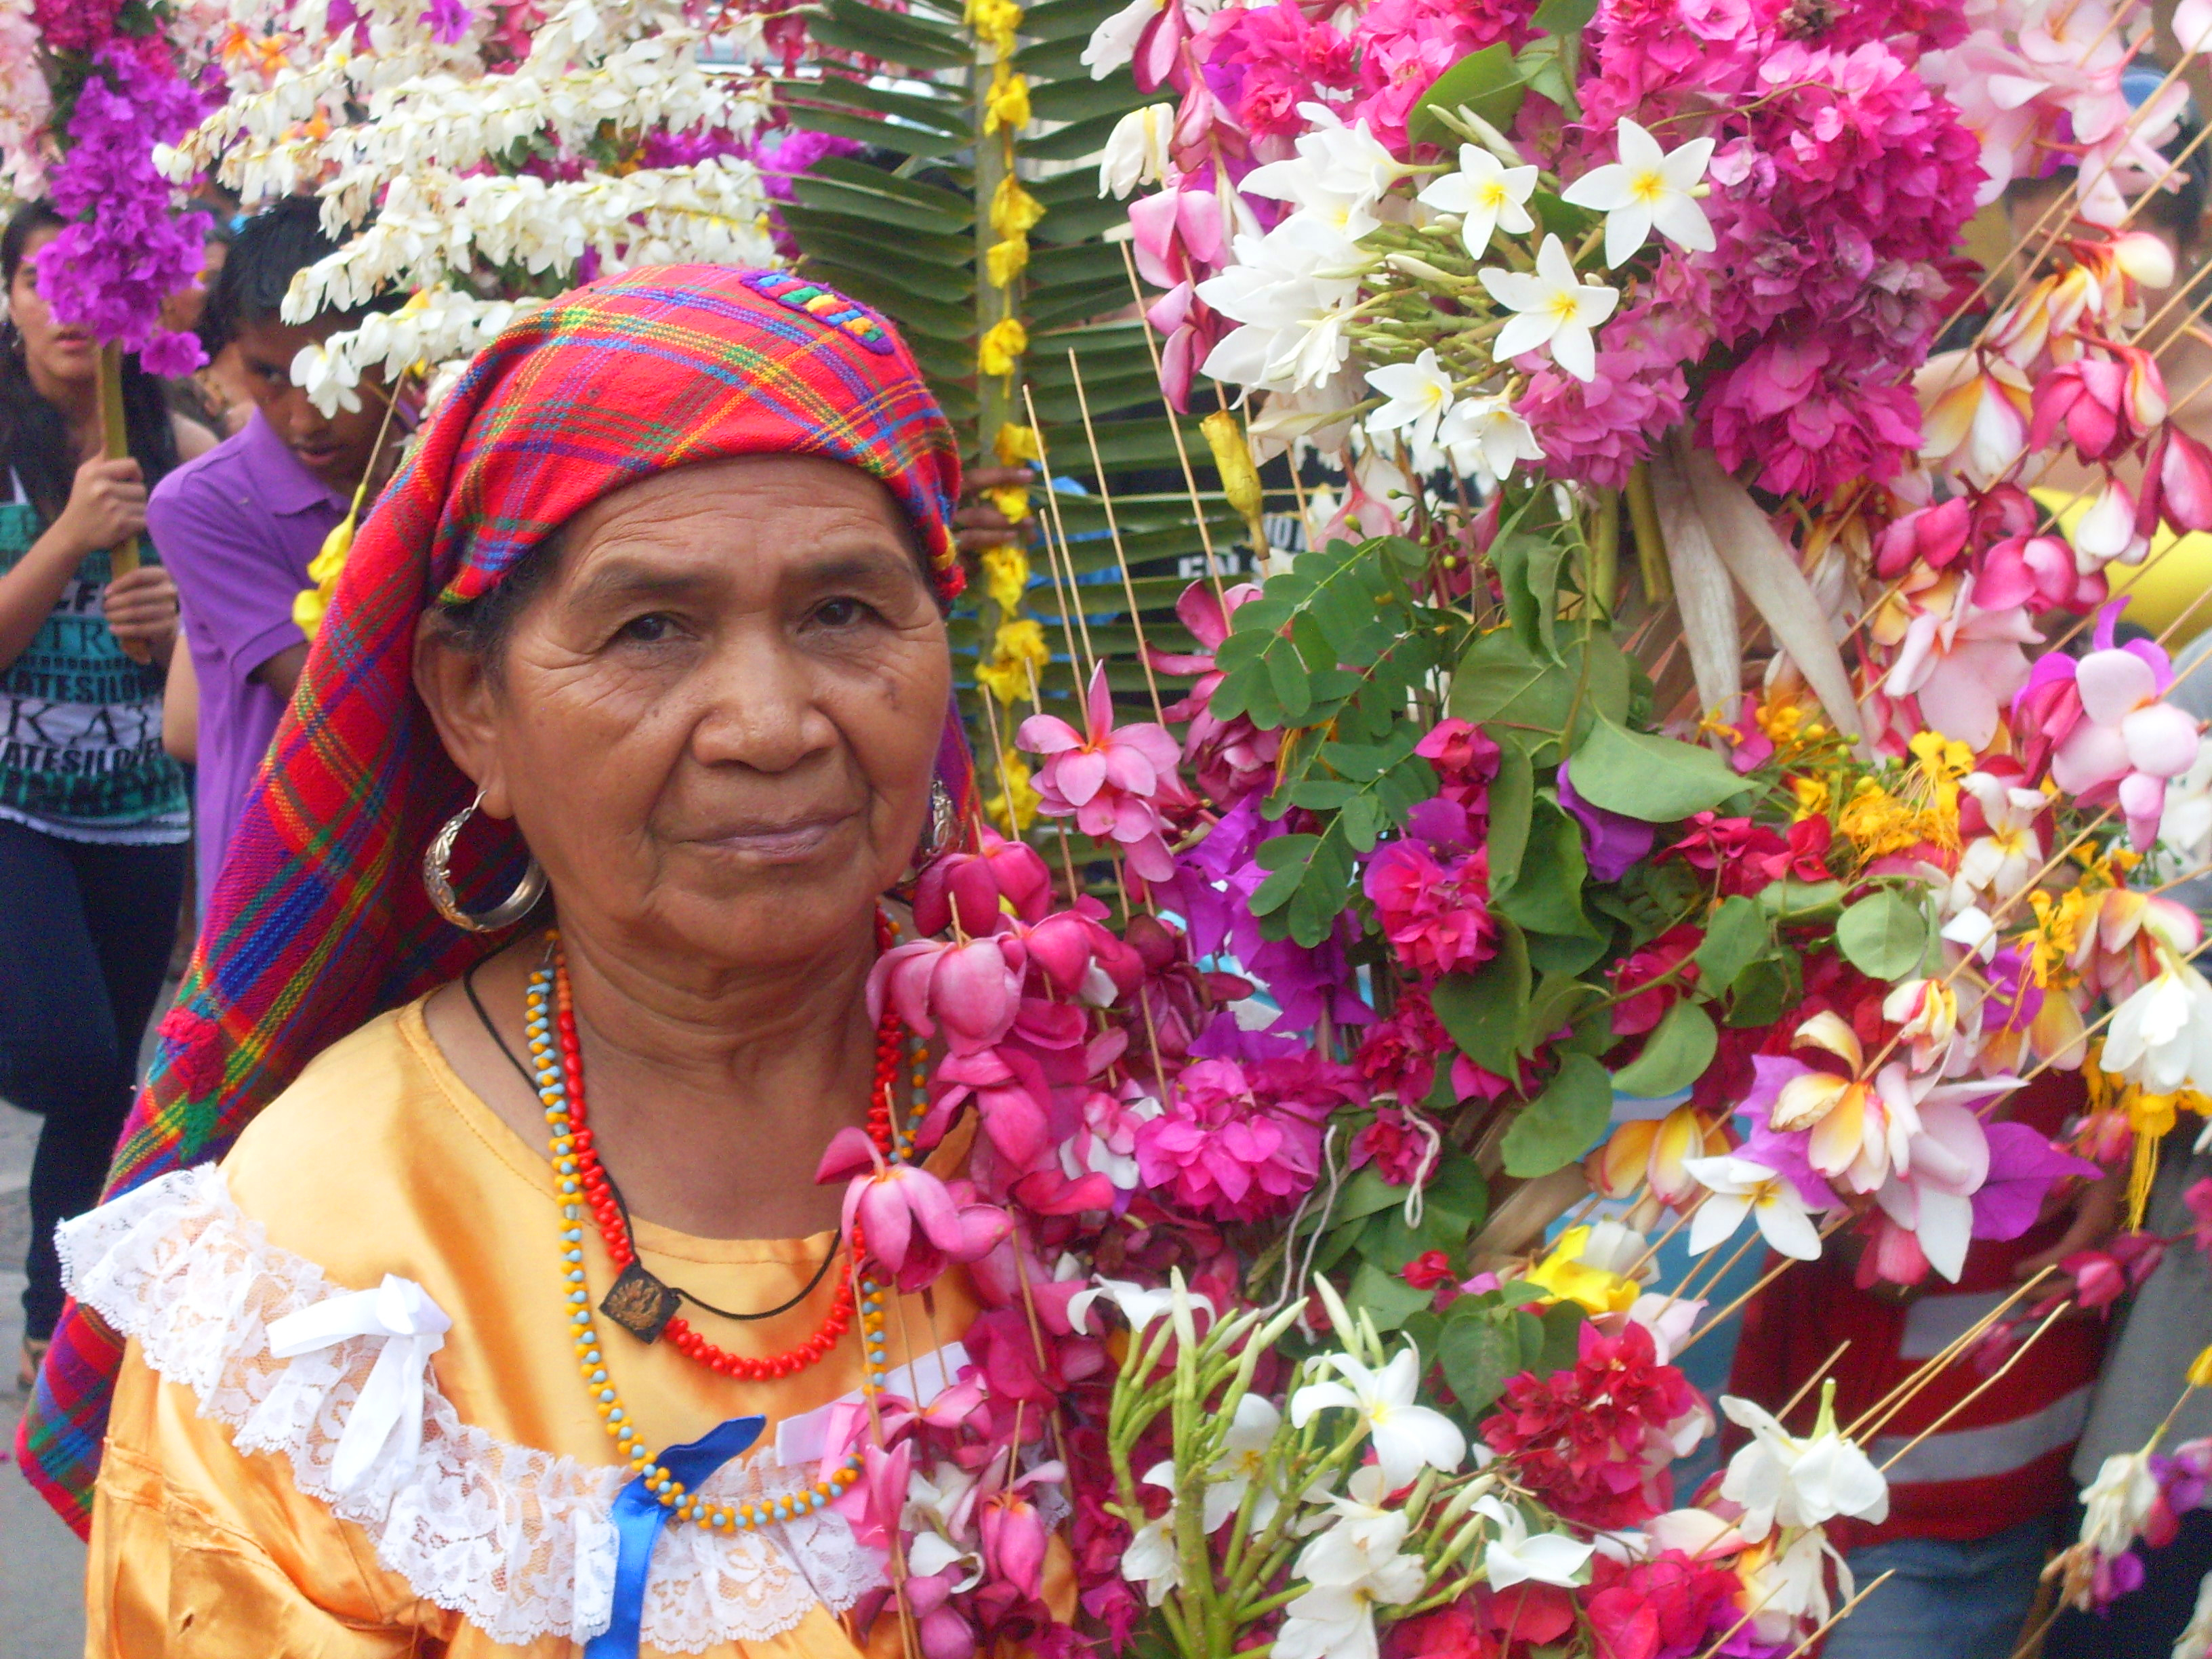 Indigenous Salvadoran woman from Panchimalco